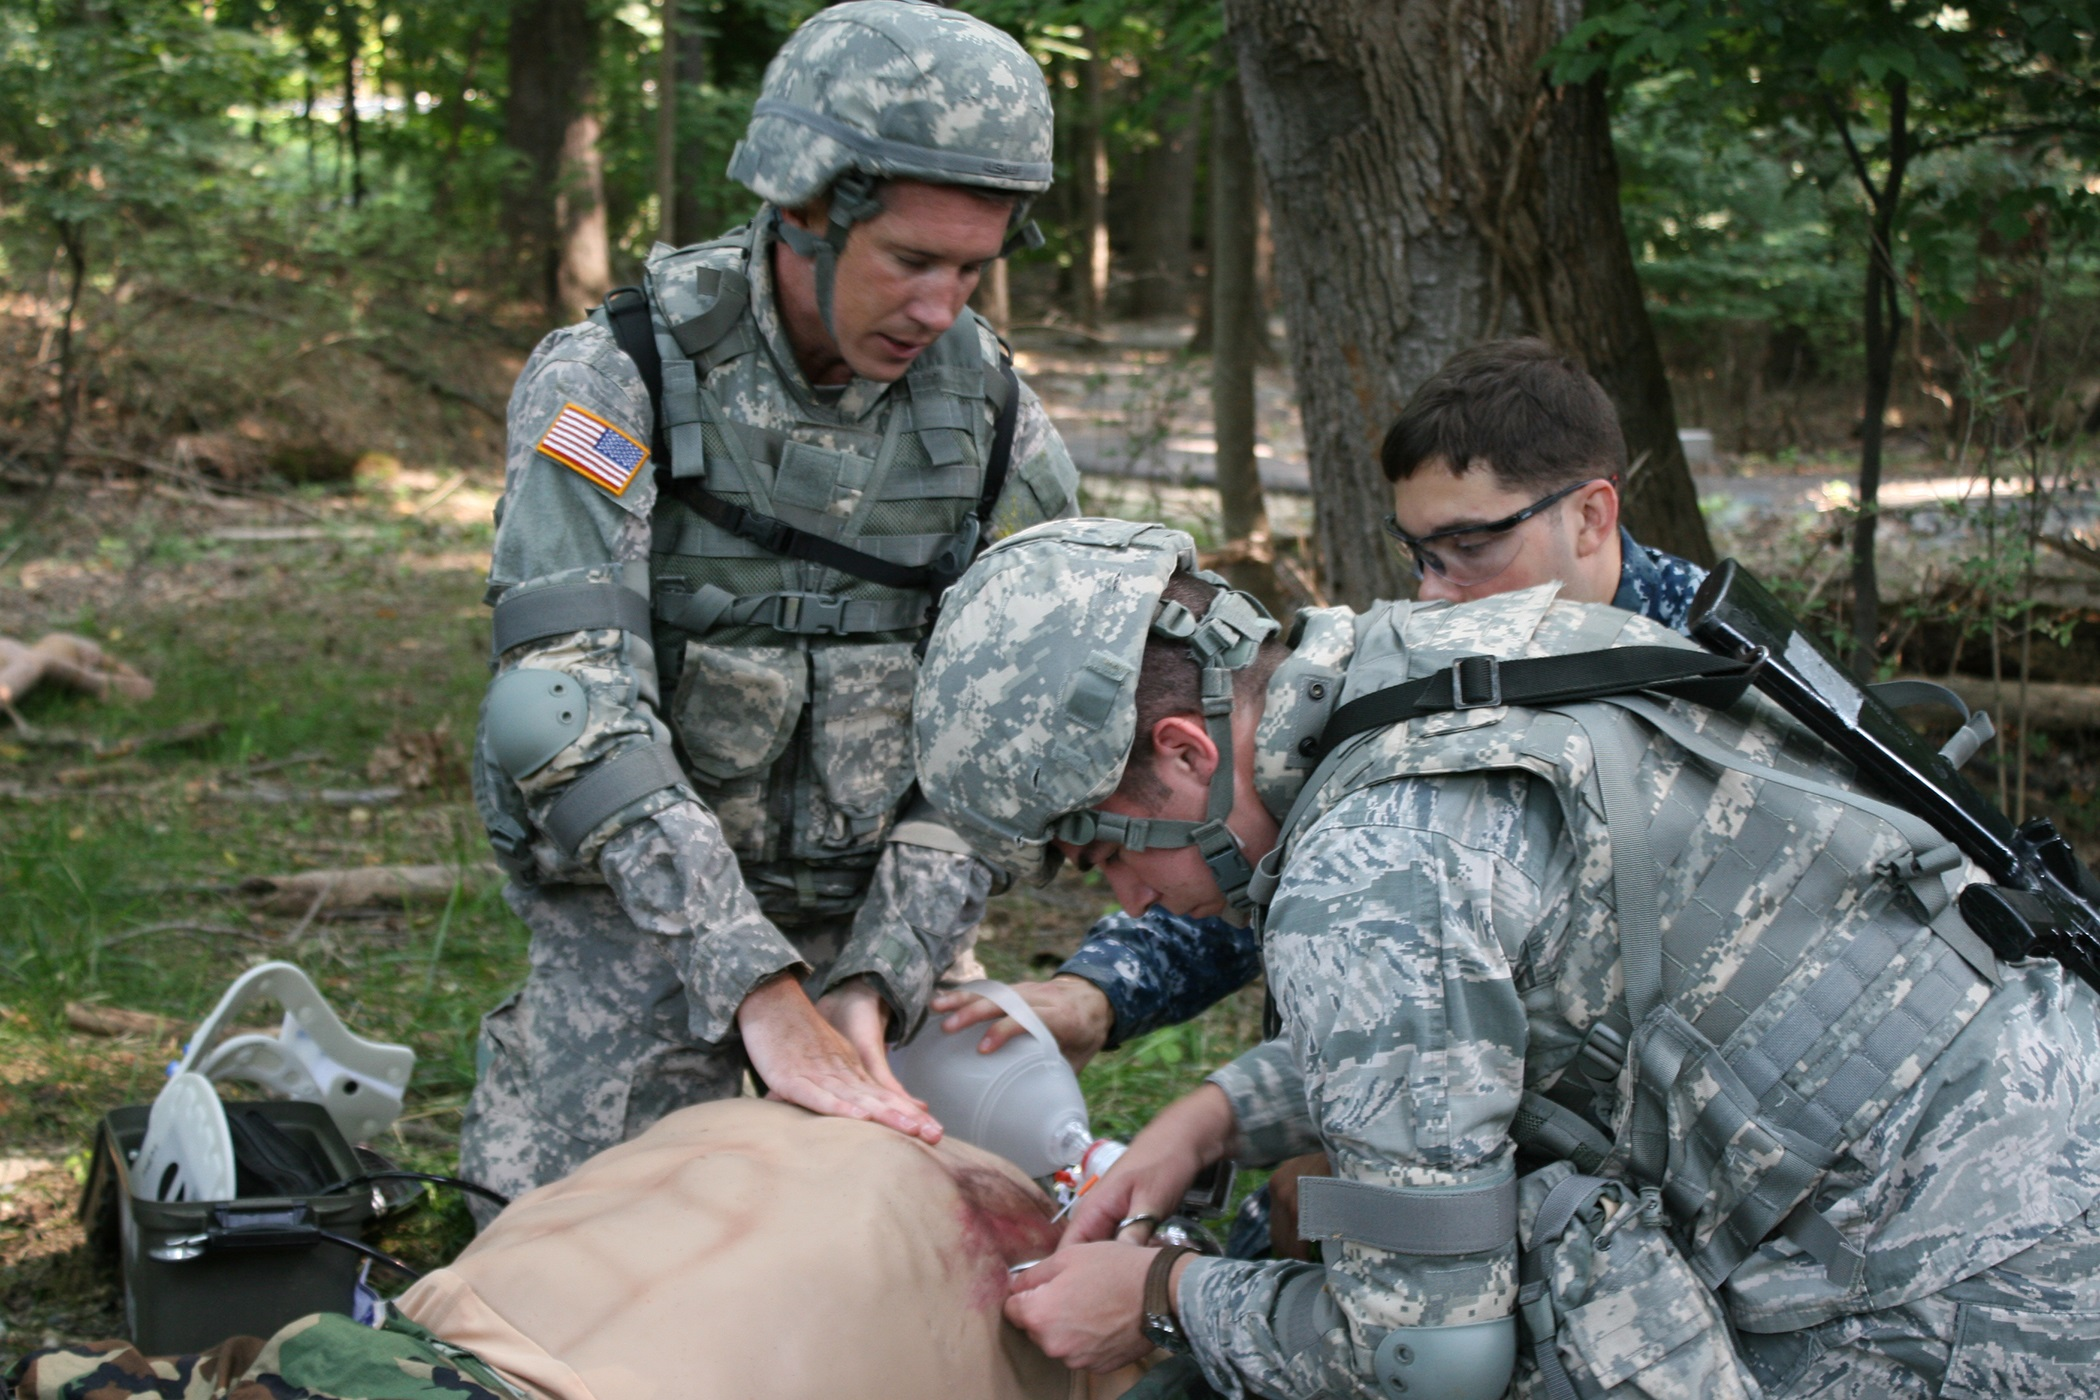 Soldiers trauma training in field.jpg